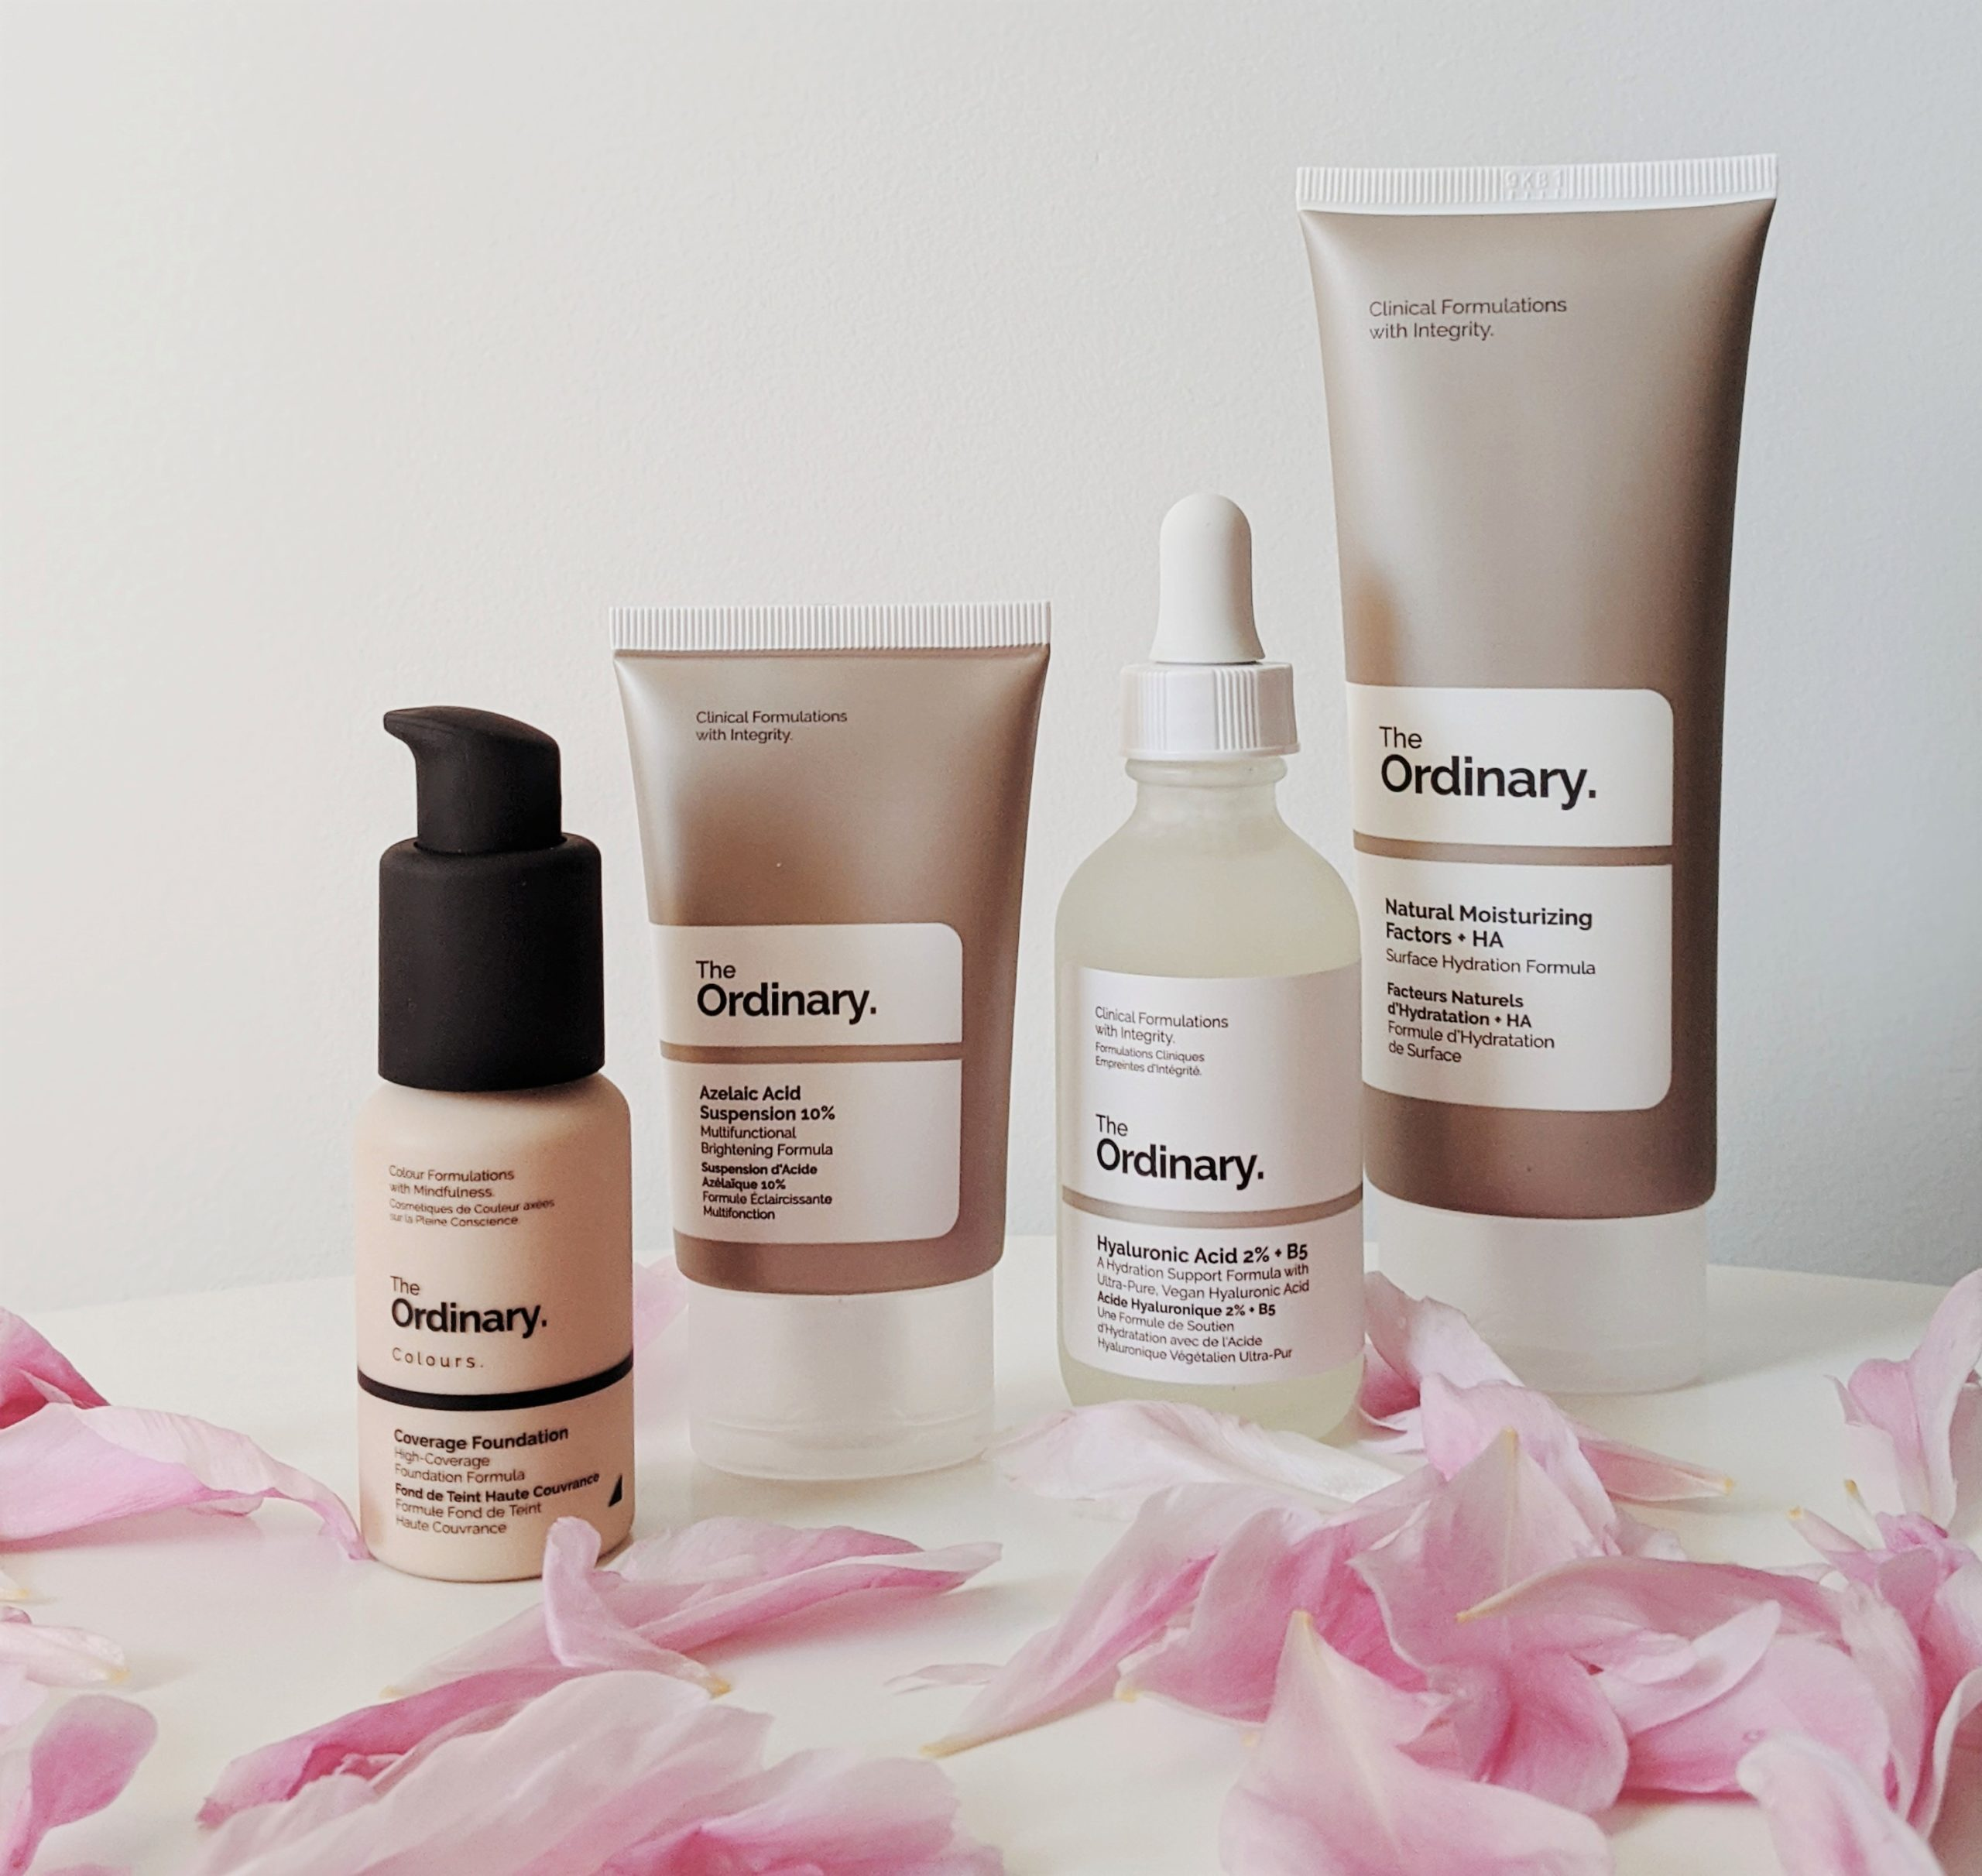 the ordinary skincare and gift ideas for mom